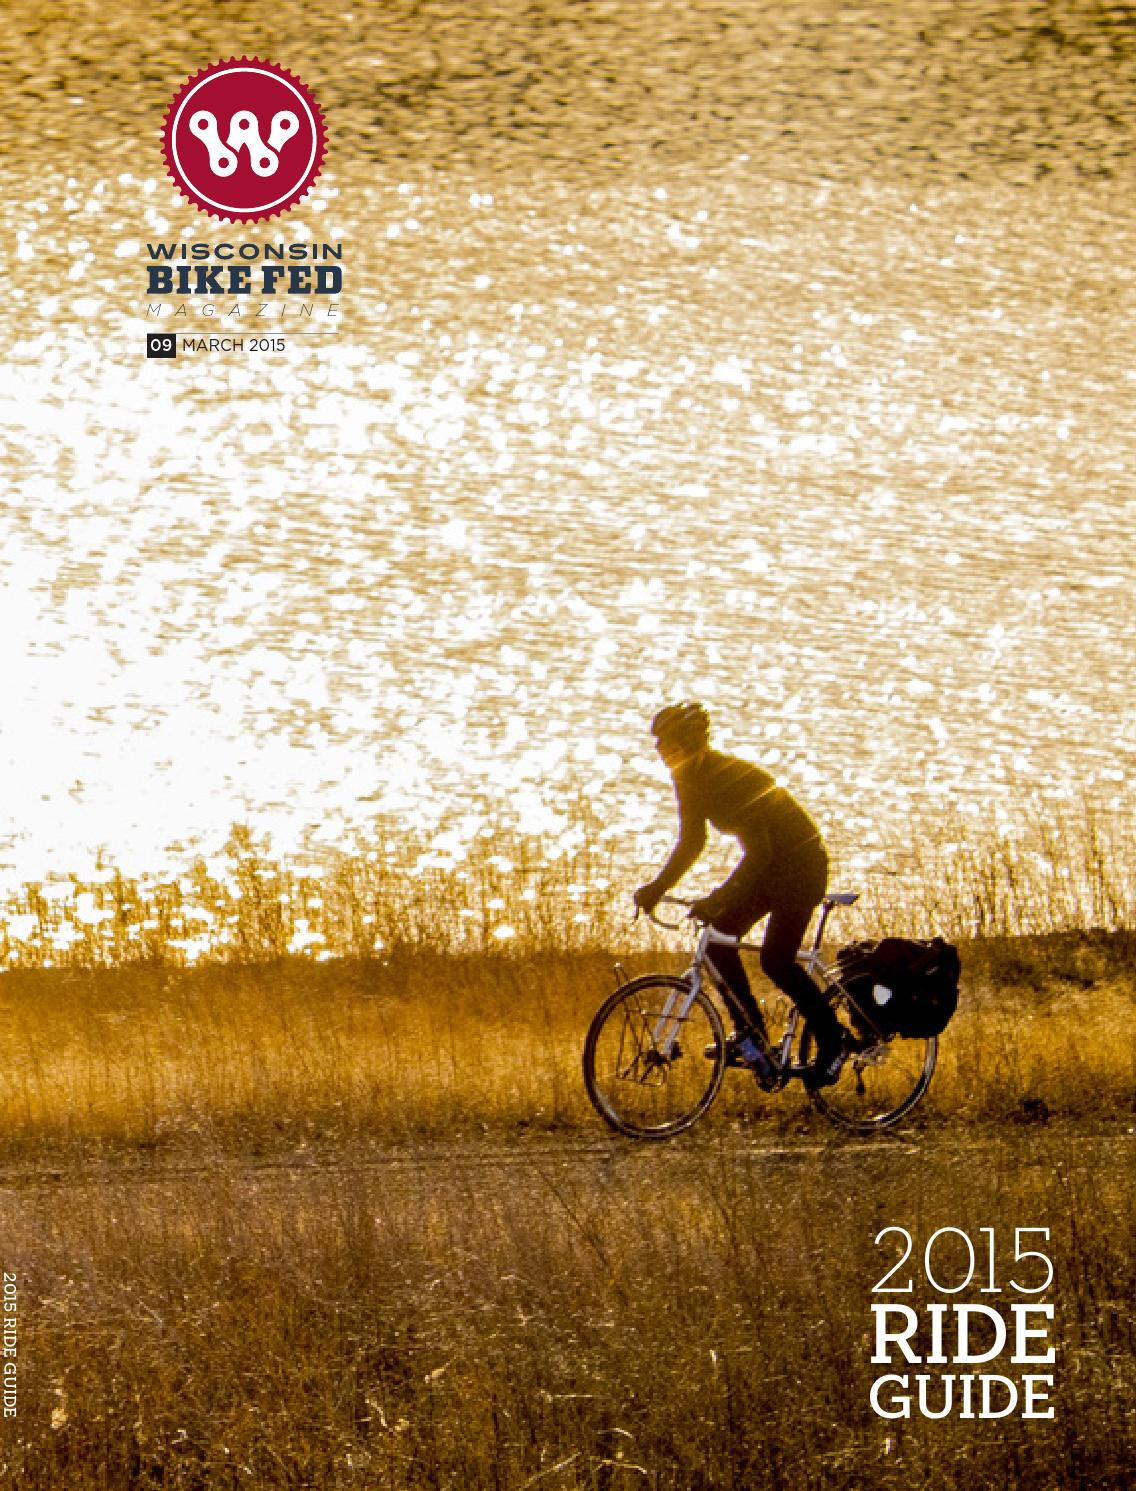 Wisconsin Bike Fed Magazine Ride Guide, March 2015 by